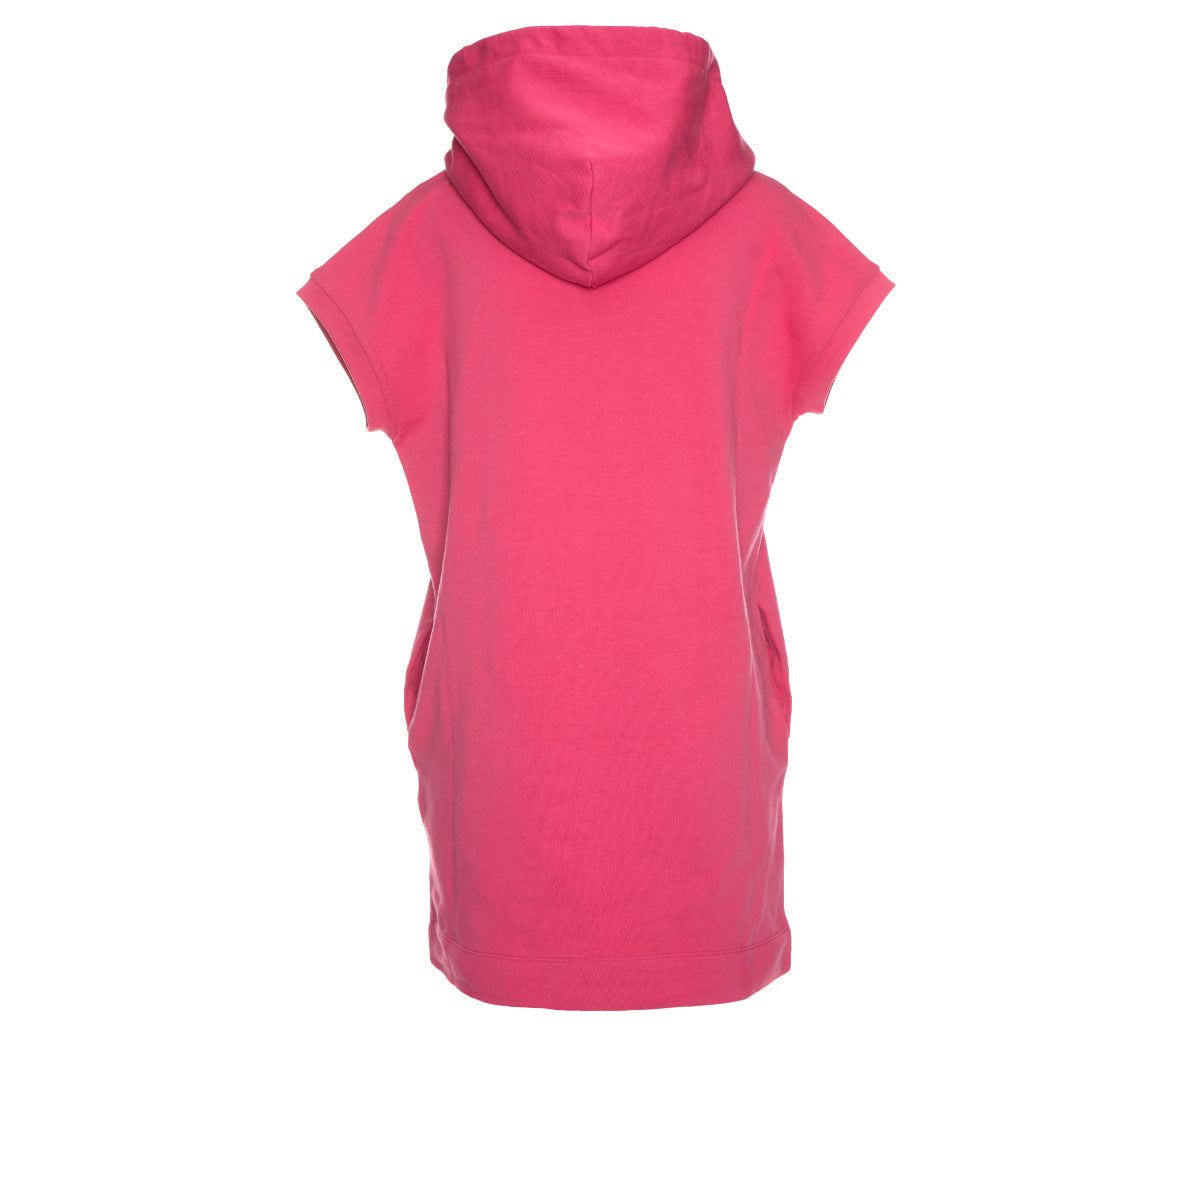 Cotton Fleece Sleeveless Dress with Hoodie